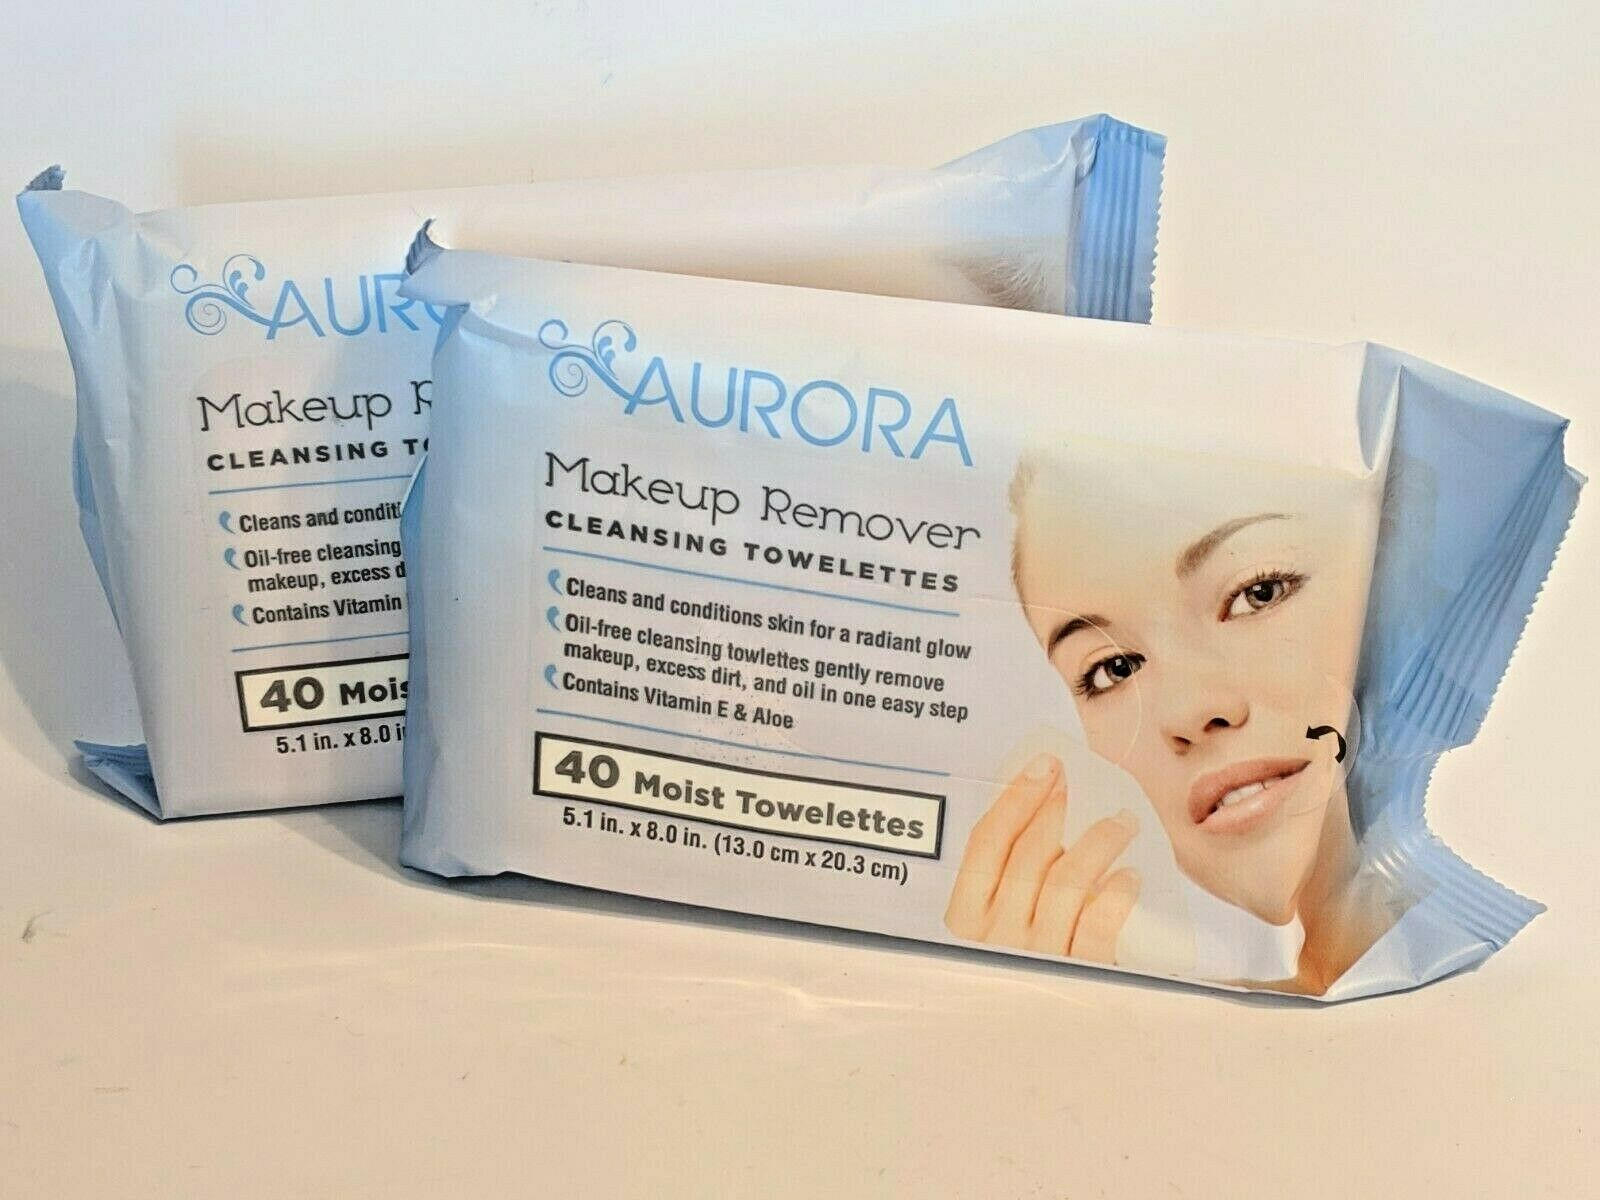 AURORA MakeUp Remover Cleansing Towelettes Moist 40 count ea